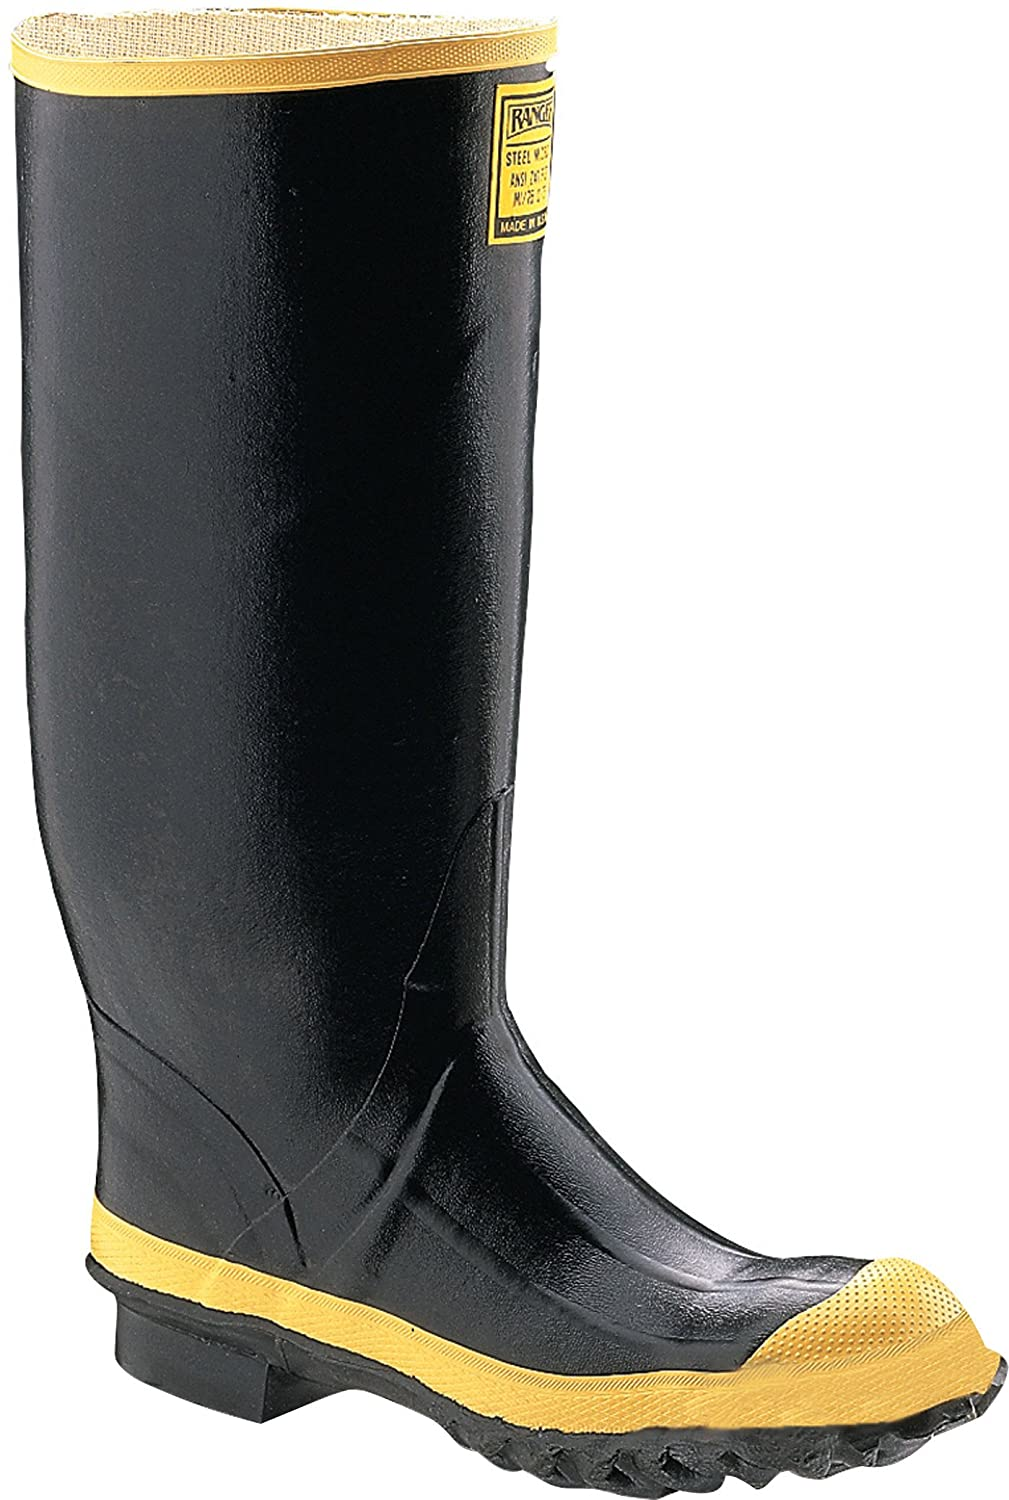 "Ranger 16"" Heavy-Duty Men's Rubber Work Boots with Steel Toe and Steel Midsole, Black & Yellow (2144)"